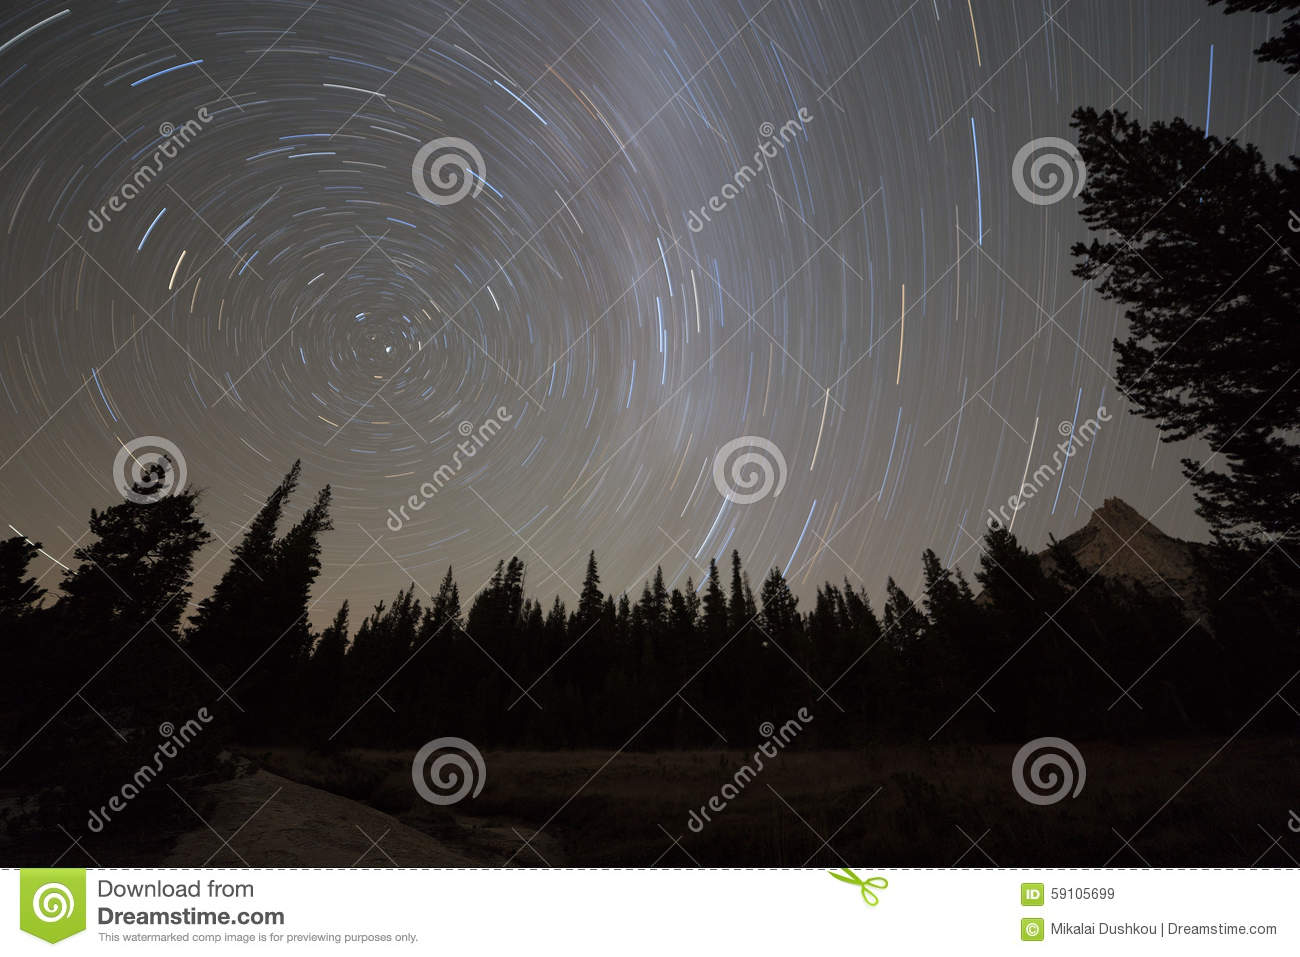 Starry night sky with circular star trails and blurred Milky Way